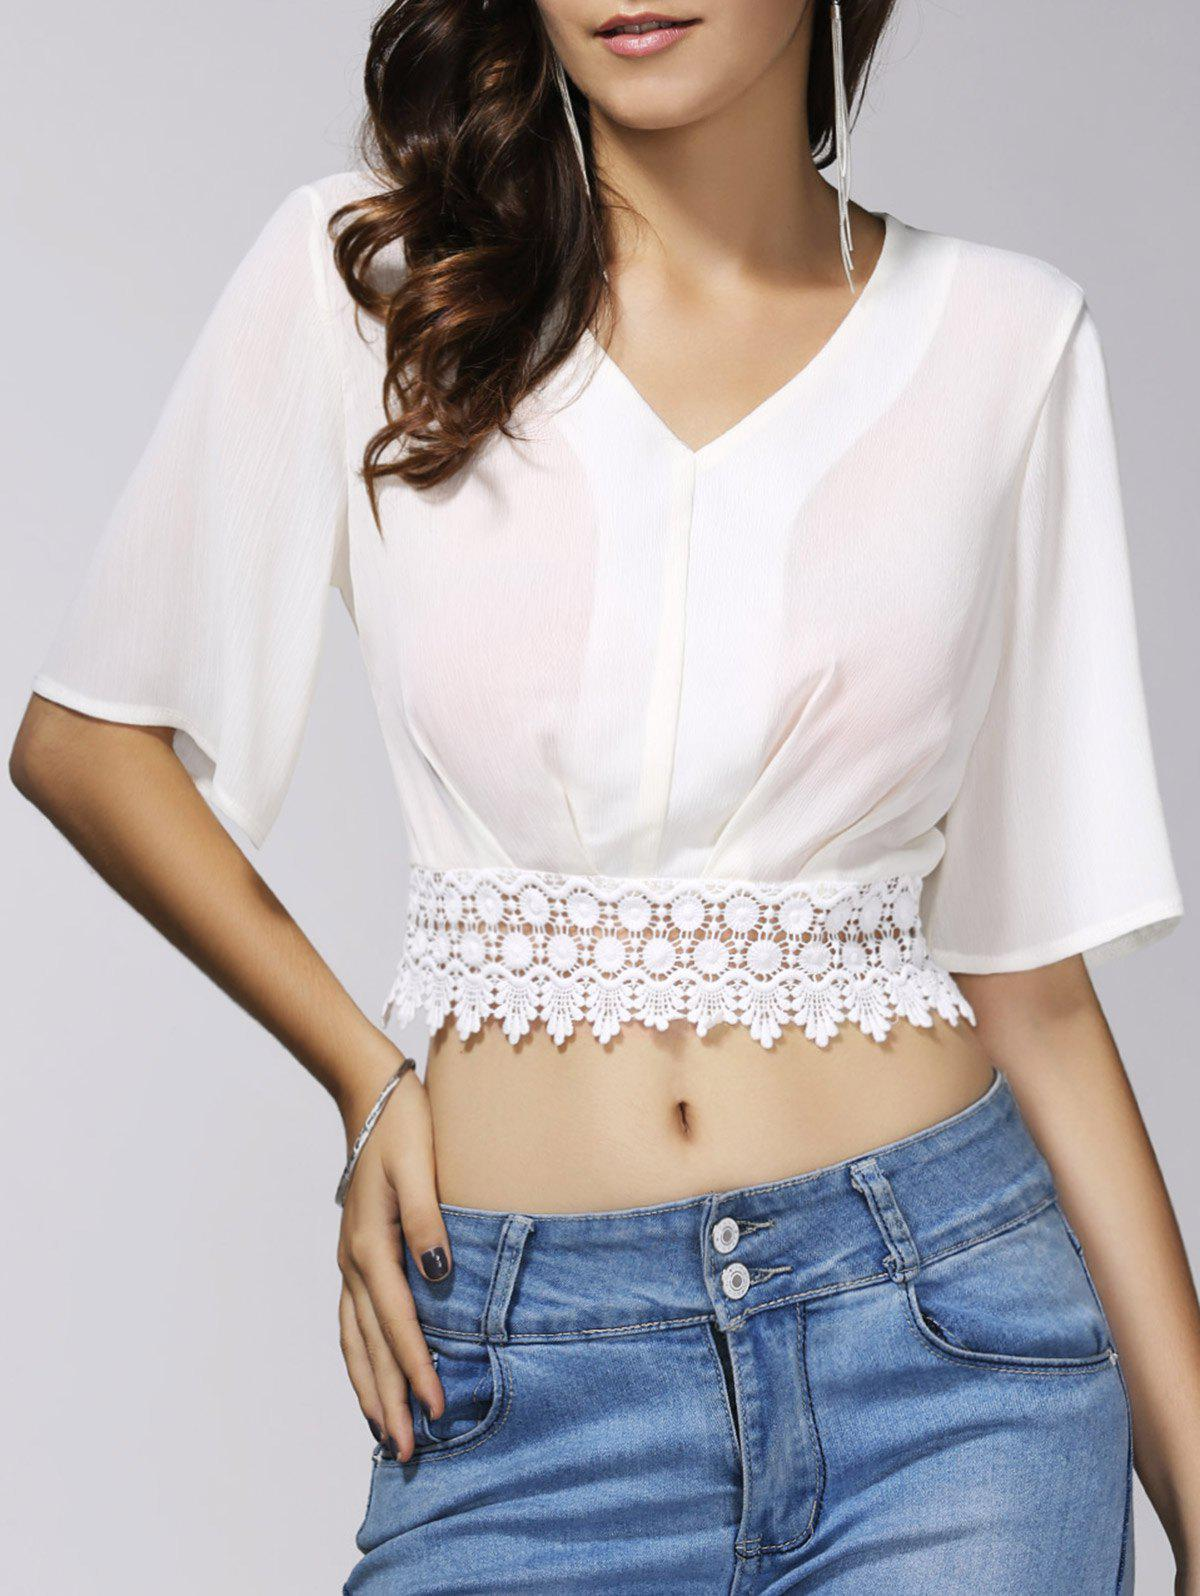 Discount Stylish V-Neck 1/2 Sleeve Lace Embellished Crop Top For Women